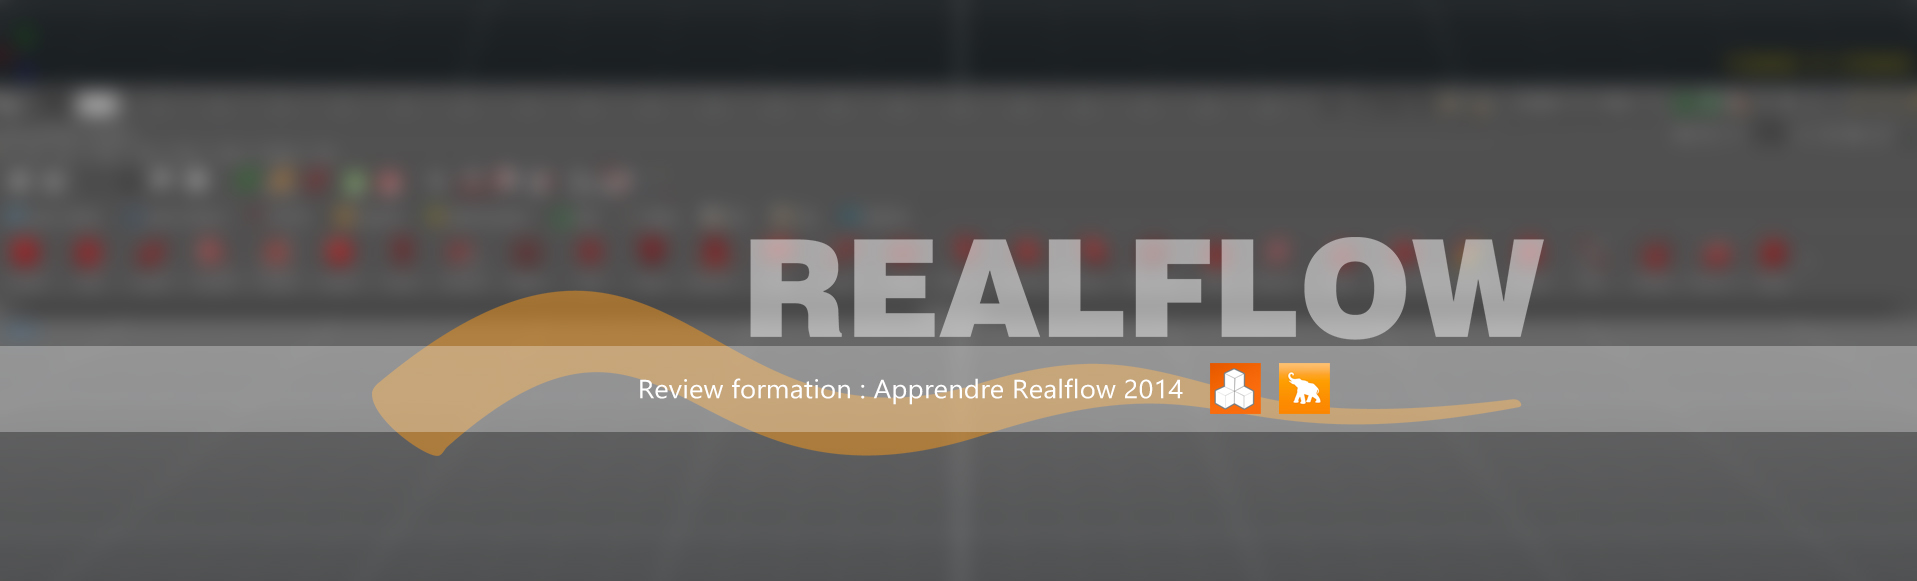 Review formation Elephorm : Realflow 2014